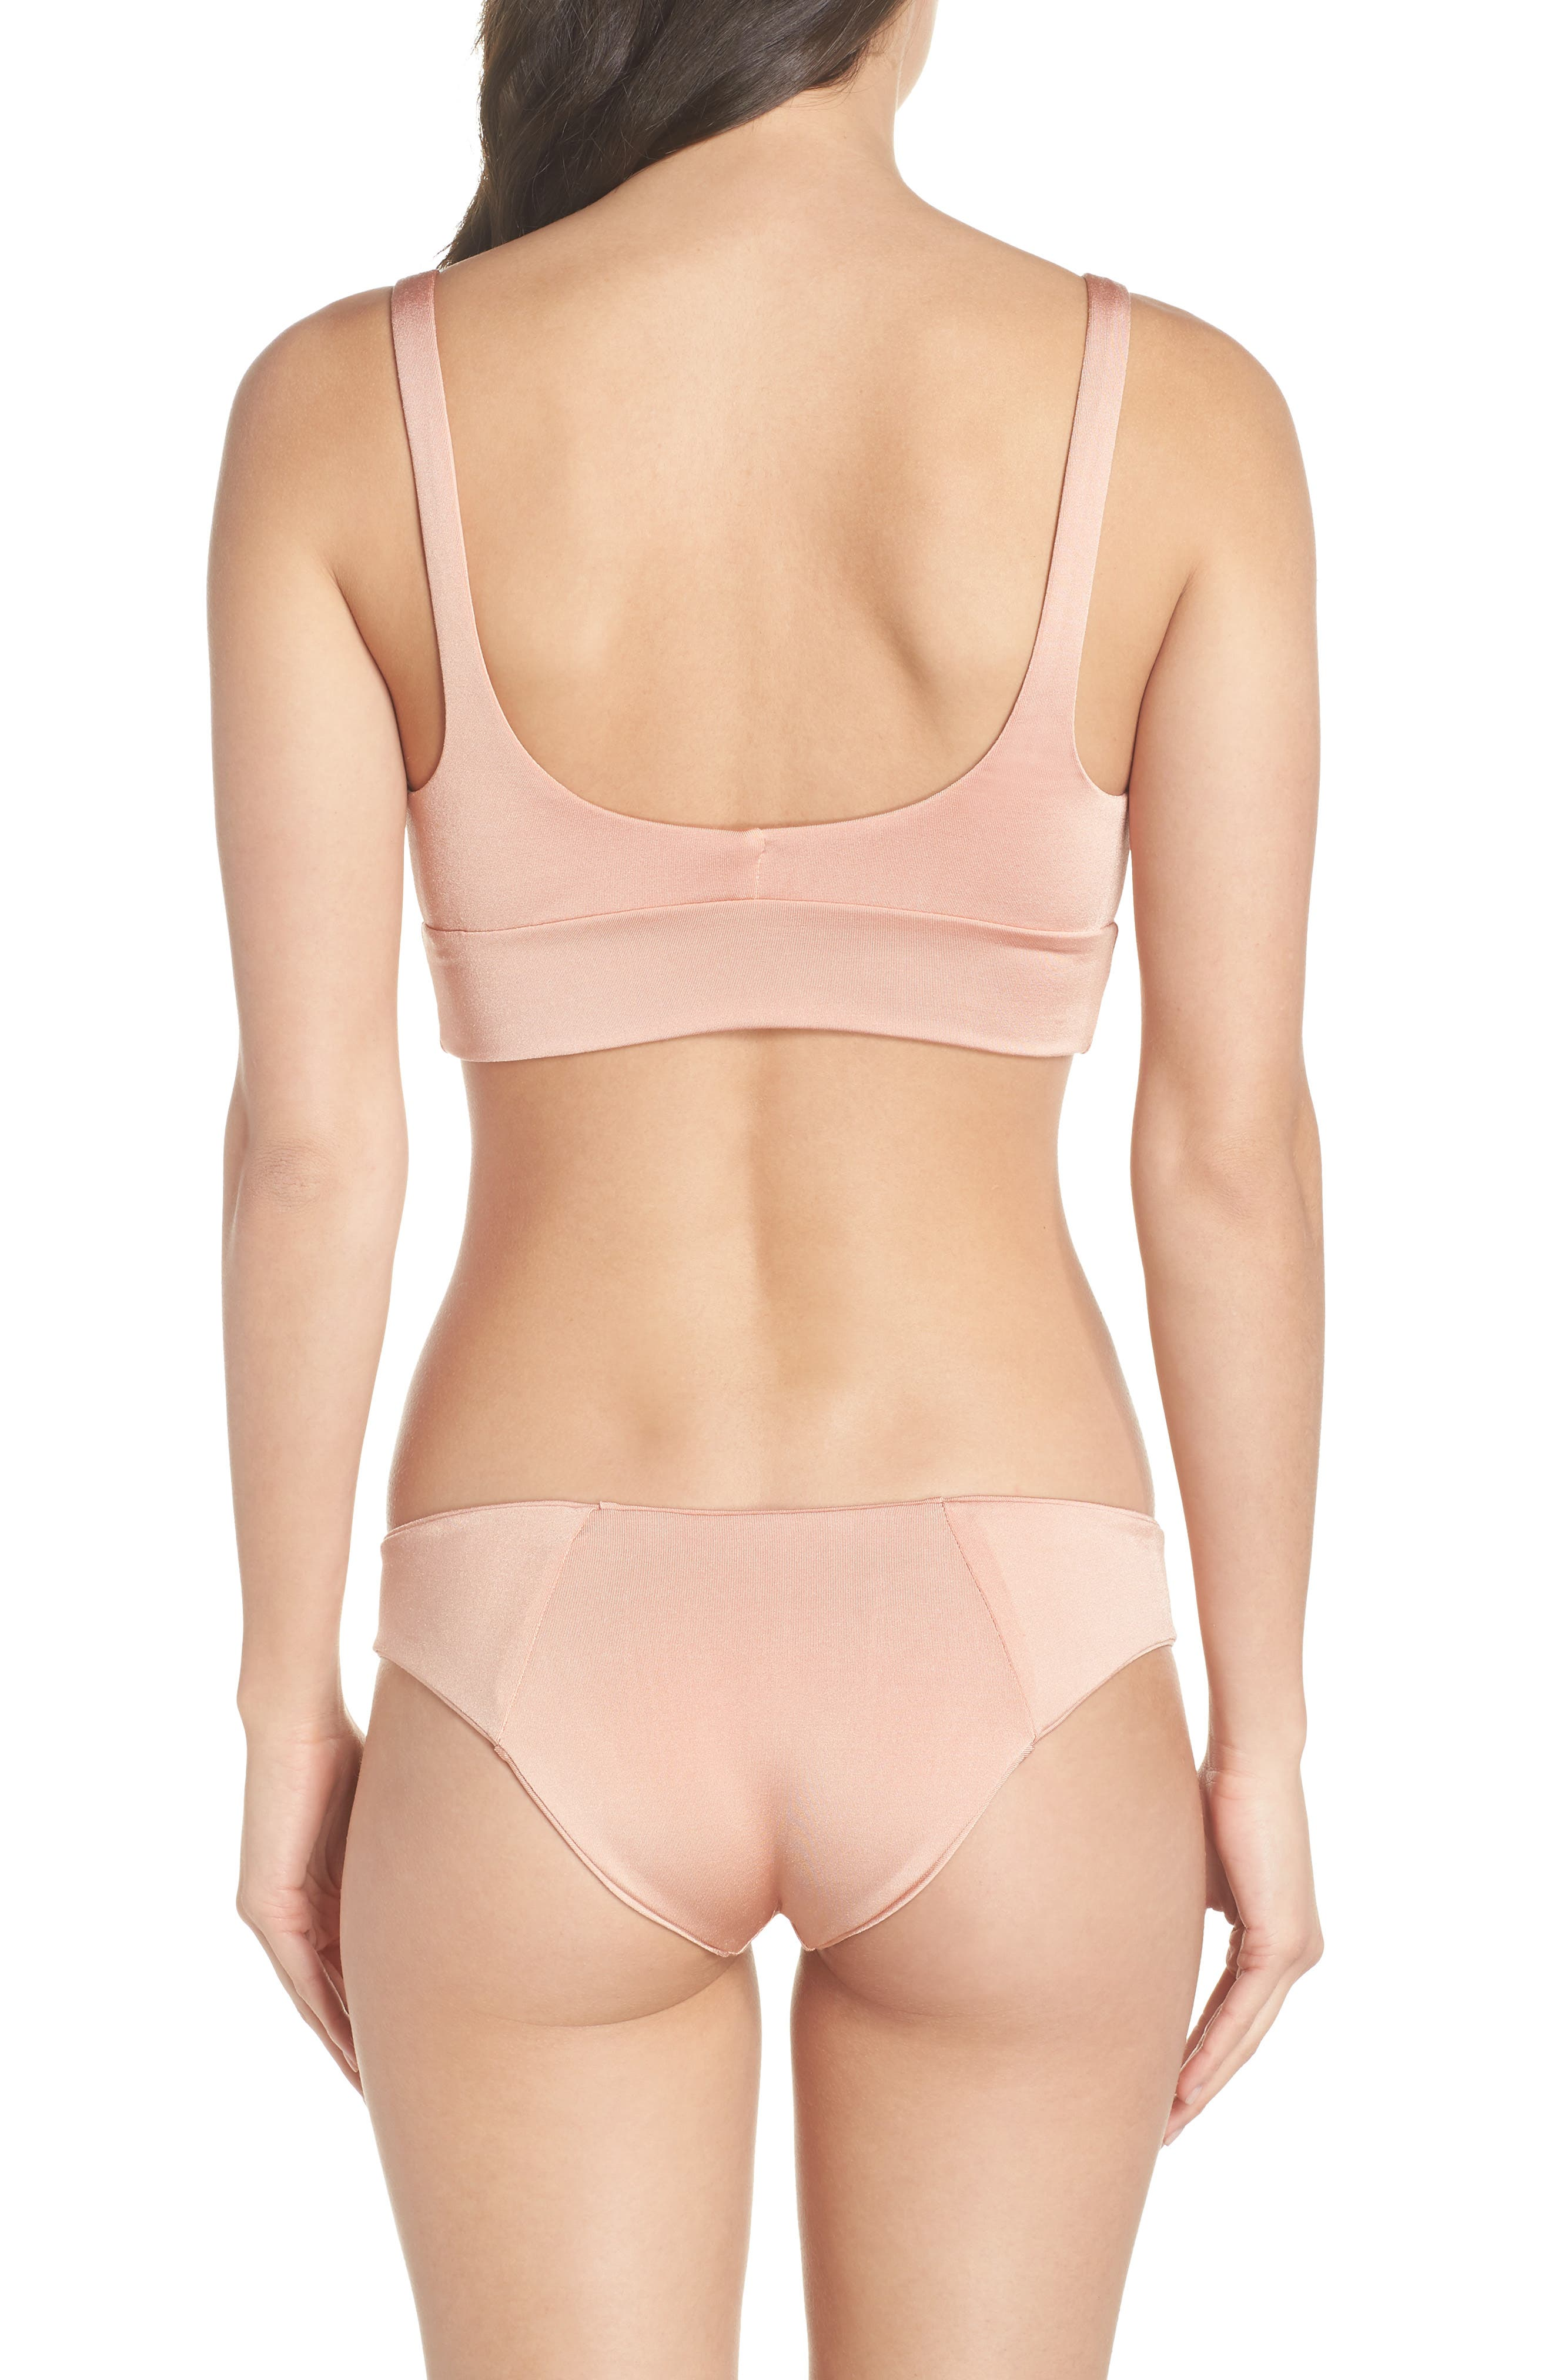 Charlie Bikini Bottoms,                             Alternate thumbnail 8, color,                             BLUSH & BASHFUL